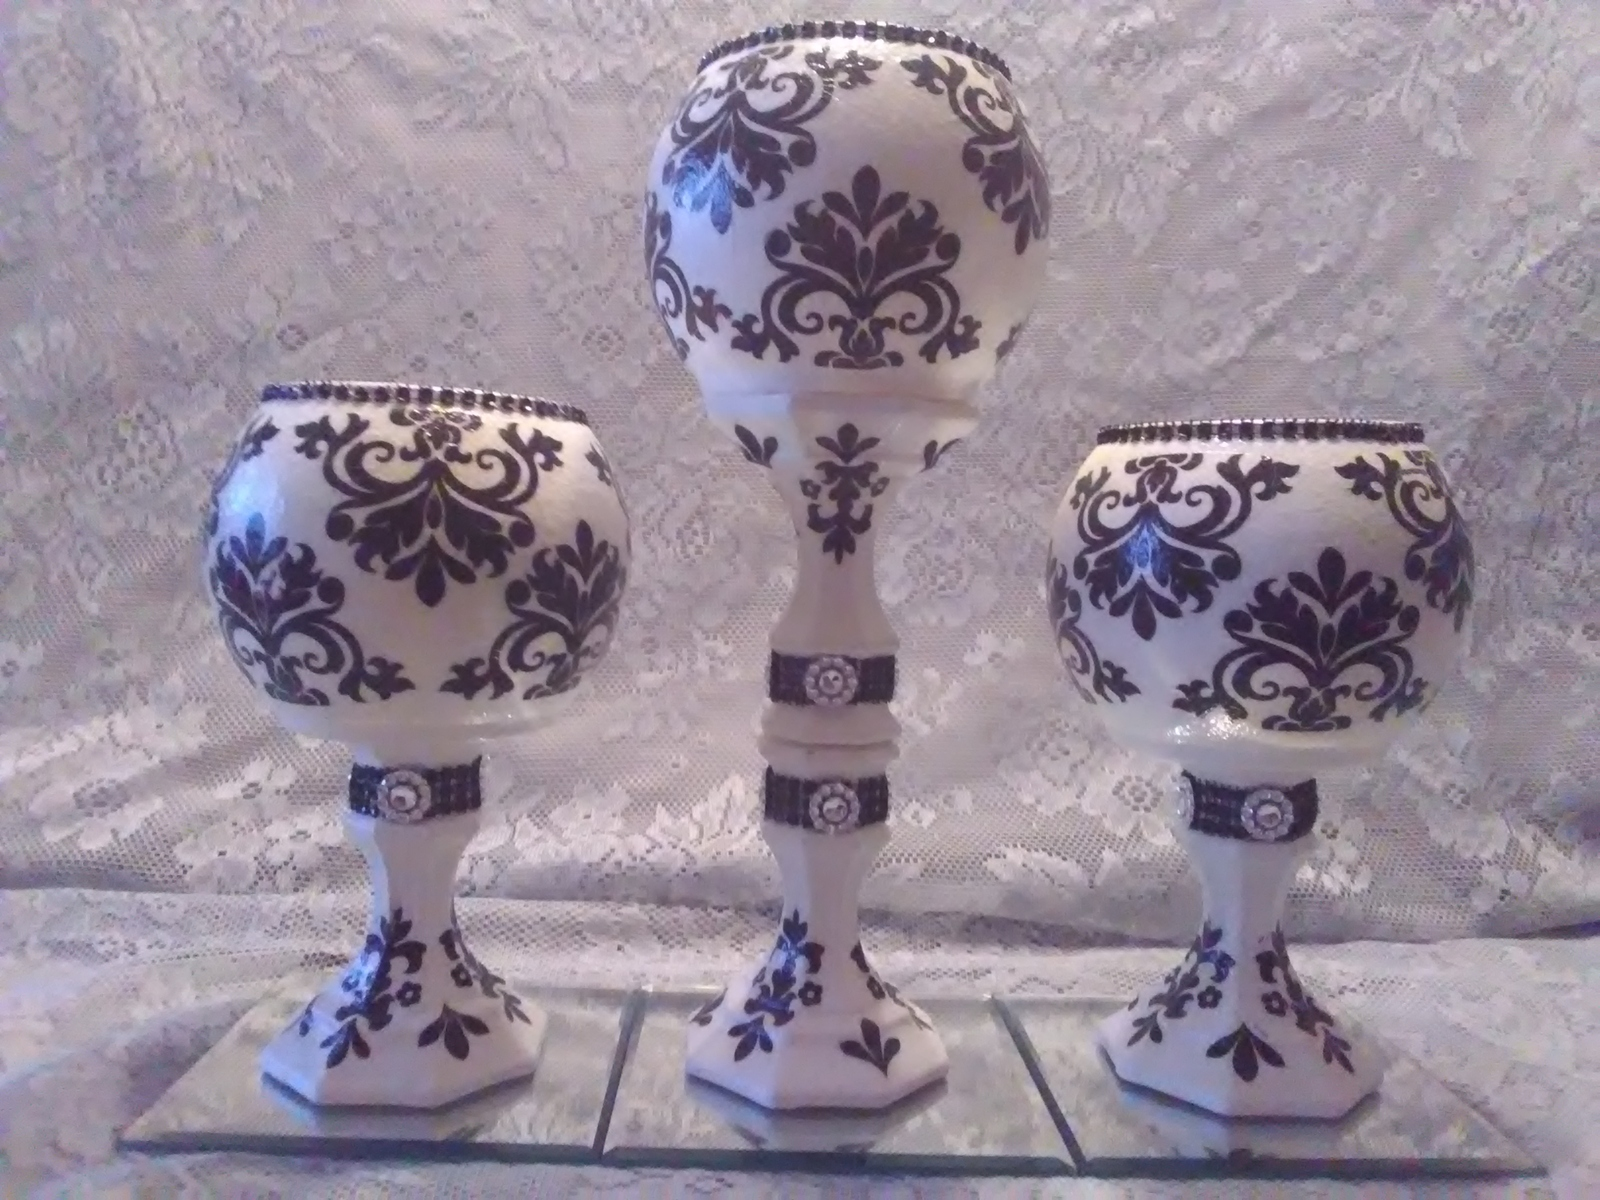 Primary image for 3pc. Black & White Candleholder Set